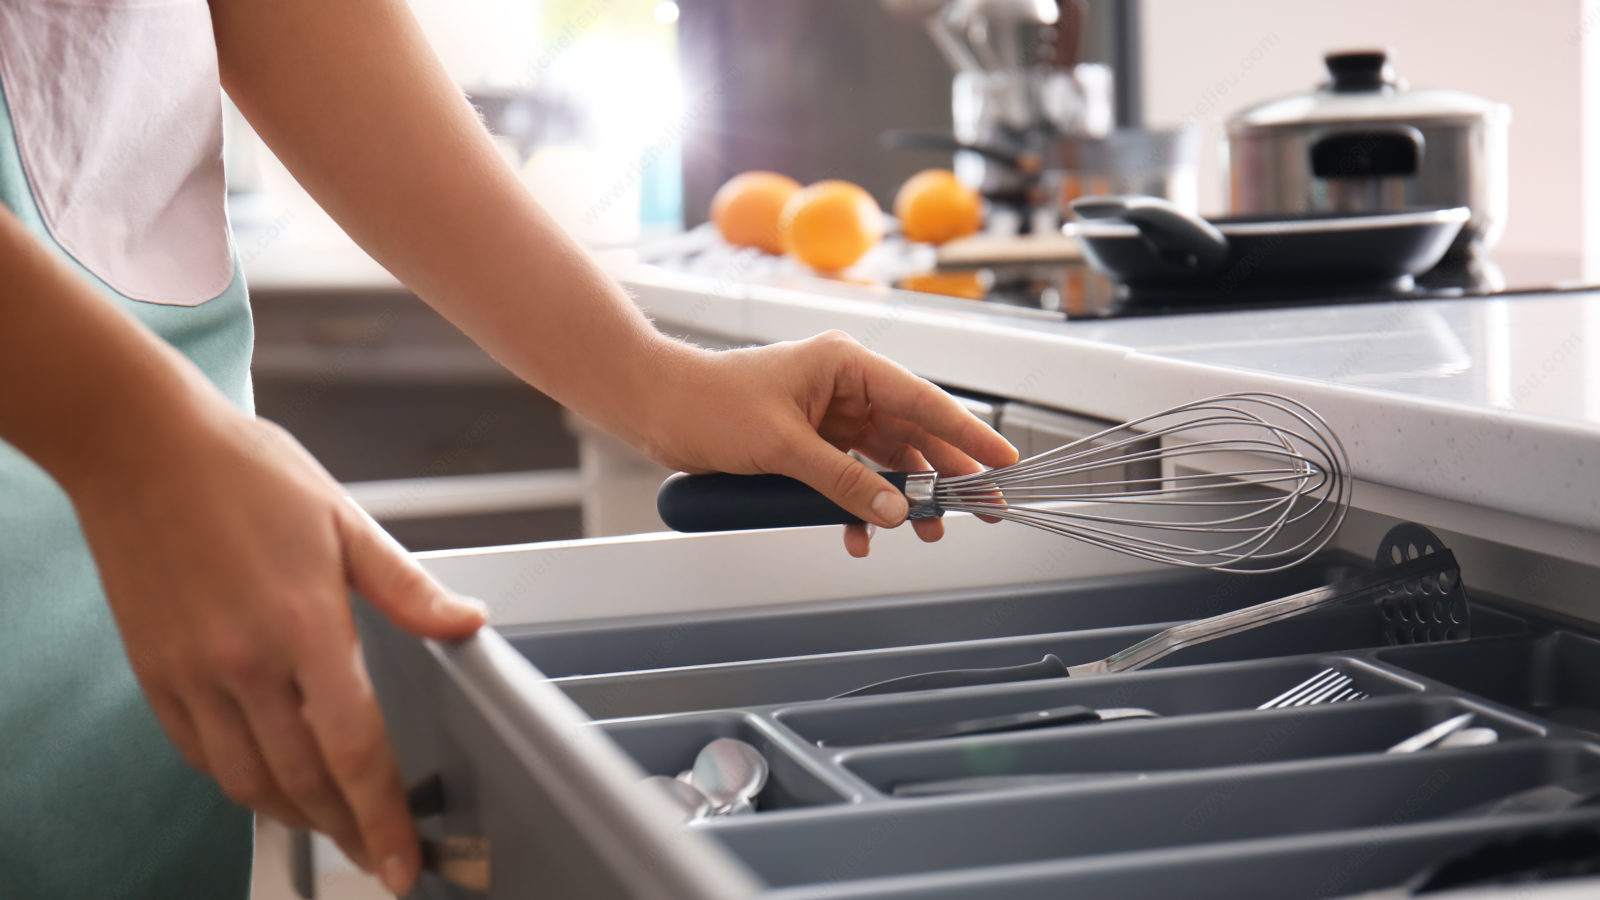 Organize your Drawers to Increase Efficiency in the Kitchen